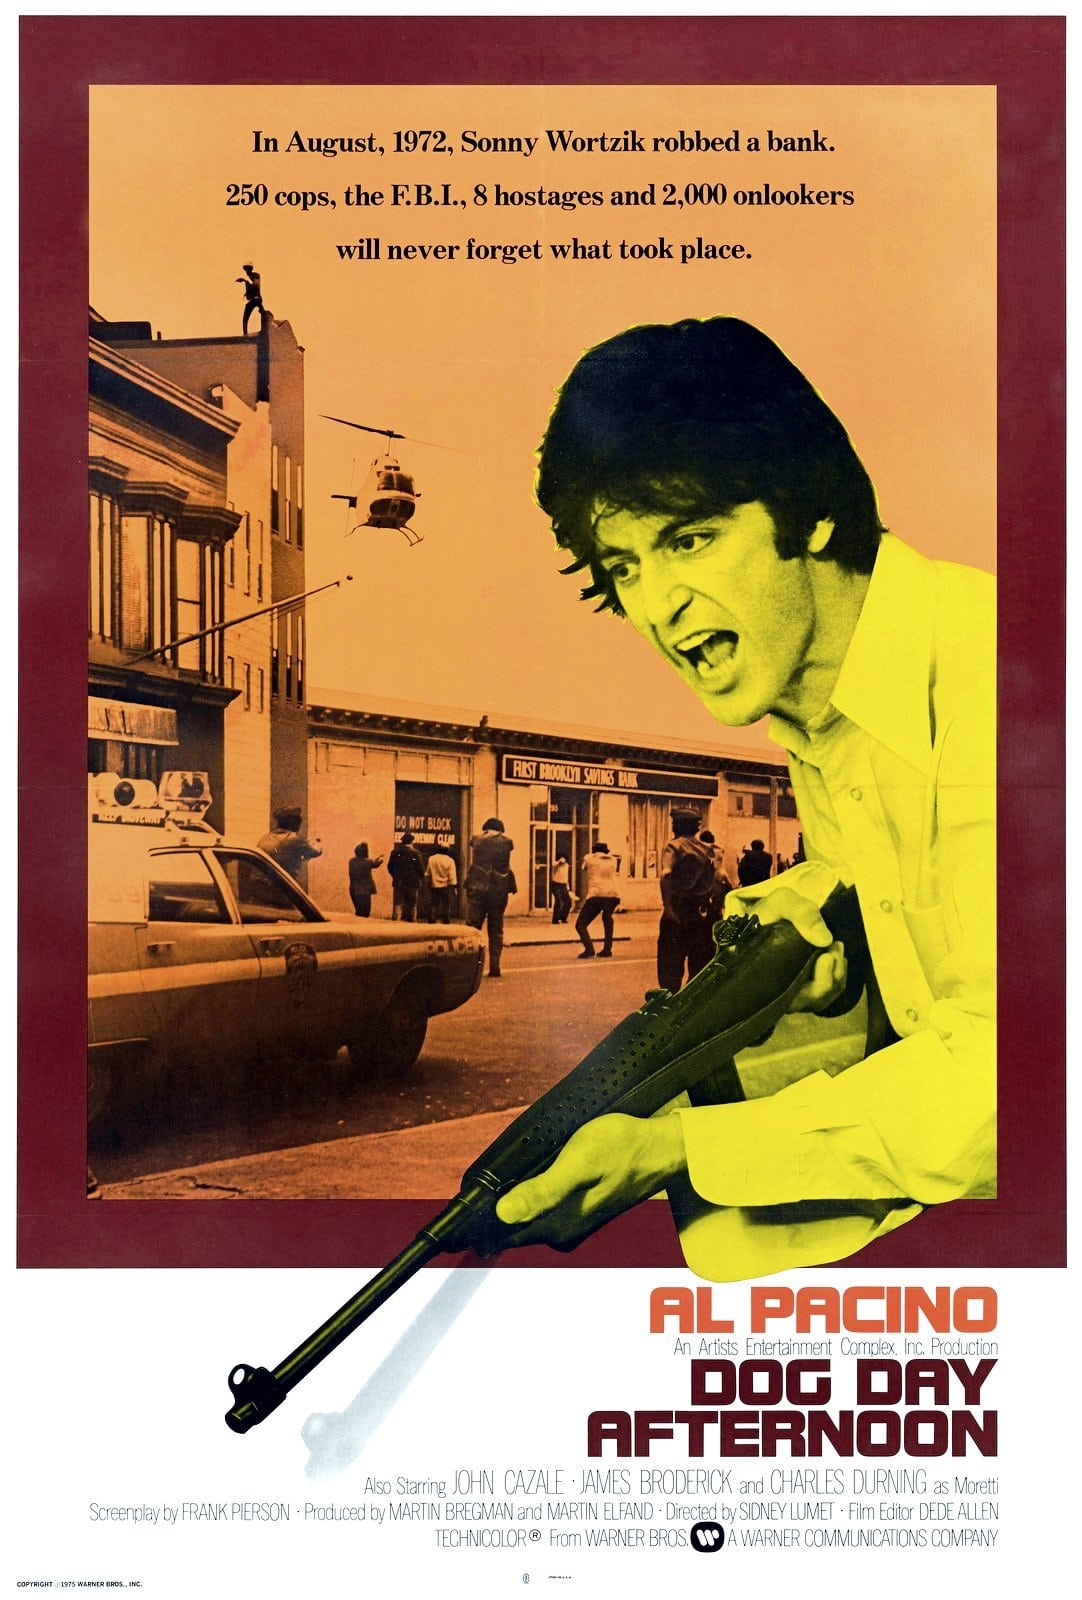 Vintage Dog Day Afternoon movie poster - Al Pacino (1975)